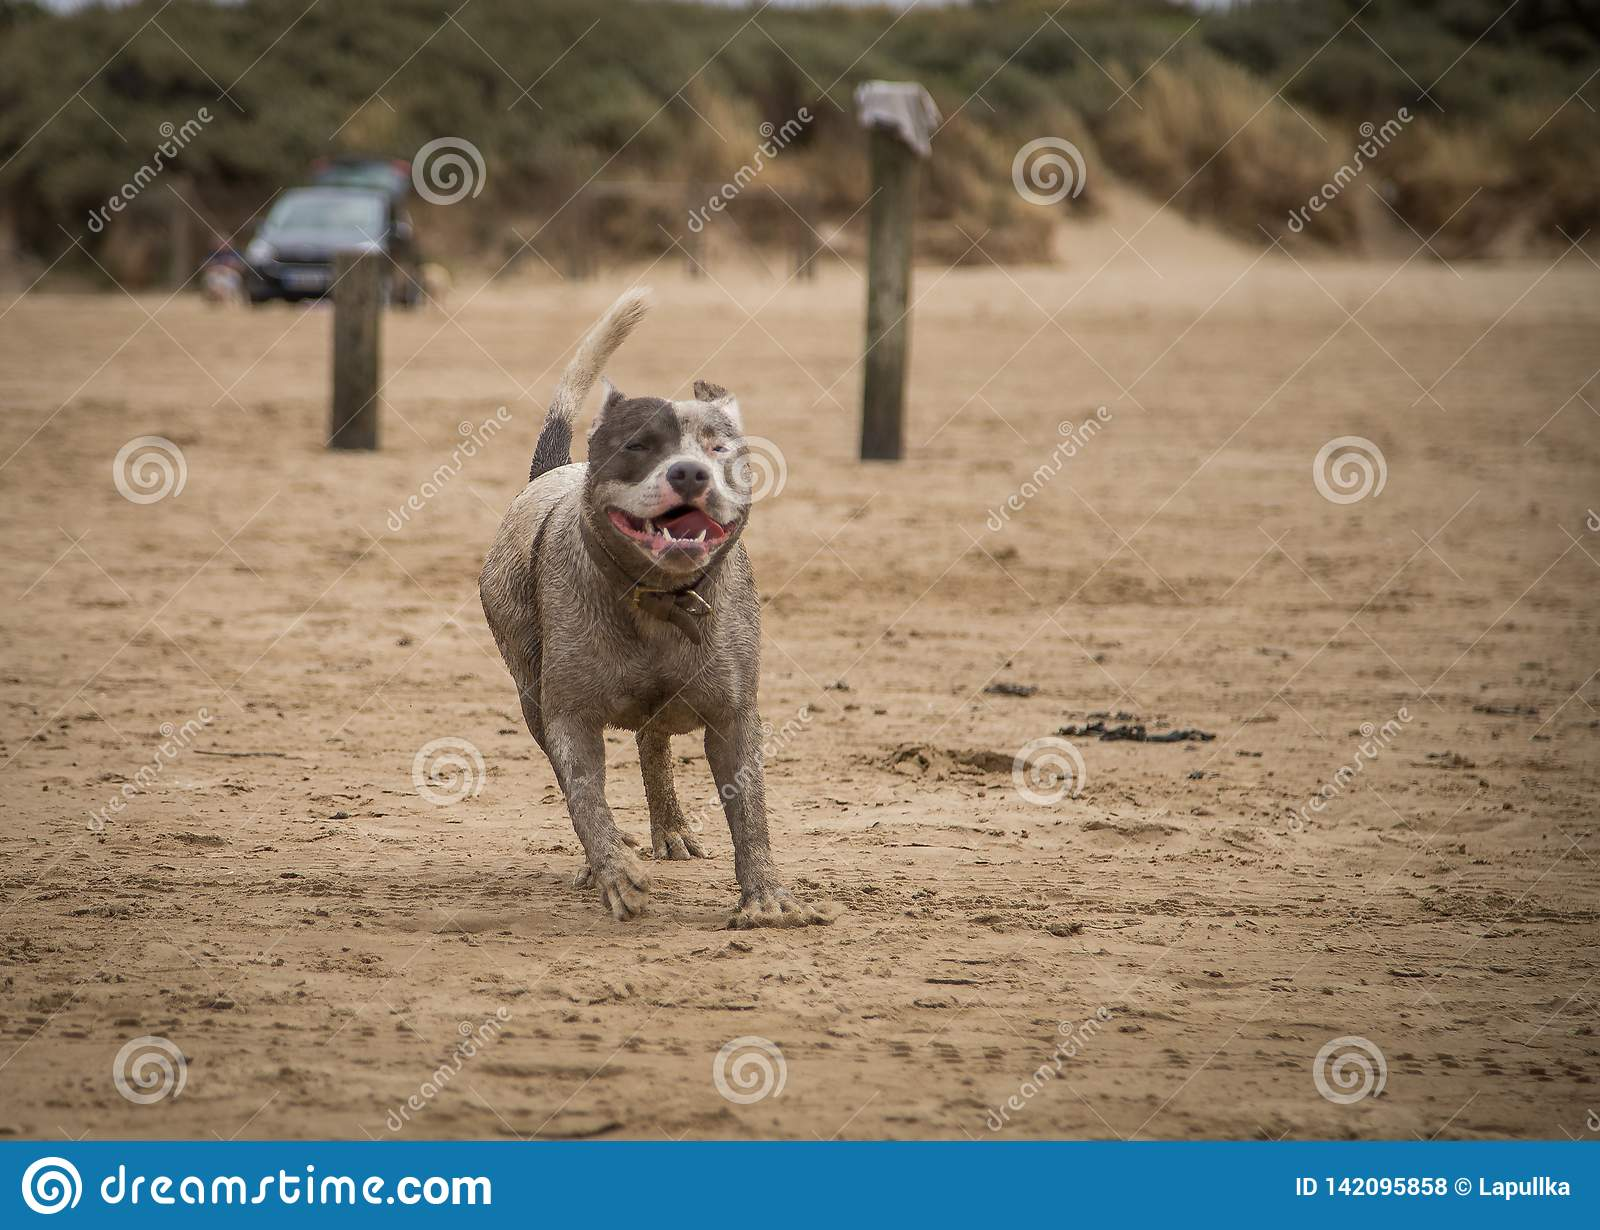 Staffordshire bull terrier dog running on the beach of Weston Super Mare